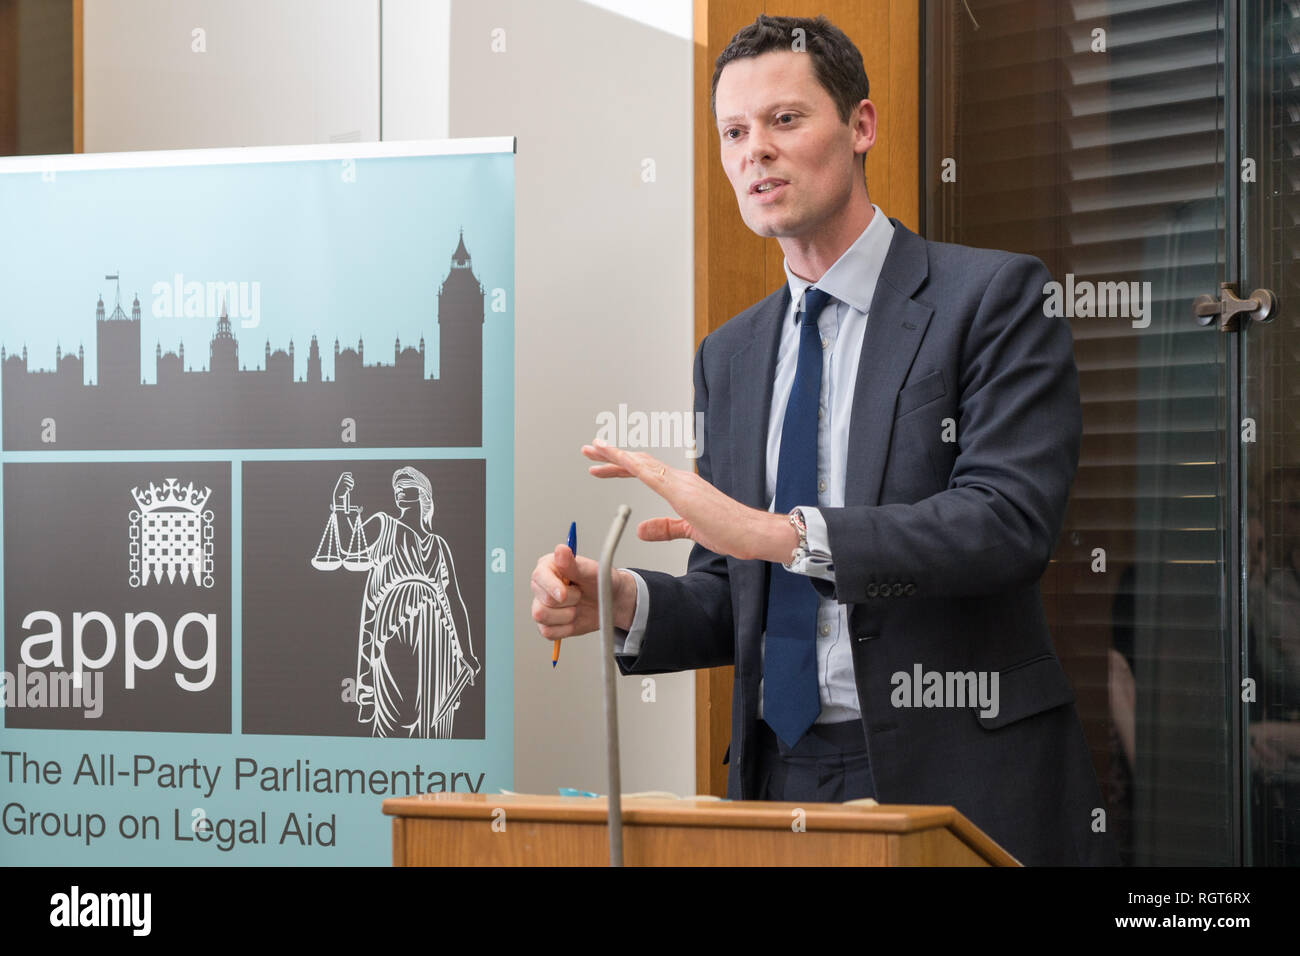 Alex Chalk, Conservative MP for Cheltenham, giving a talk at an All-Party Parliamentary Group on Legal Aid event organised by the Legal Aid Practition - Stock Image